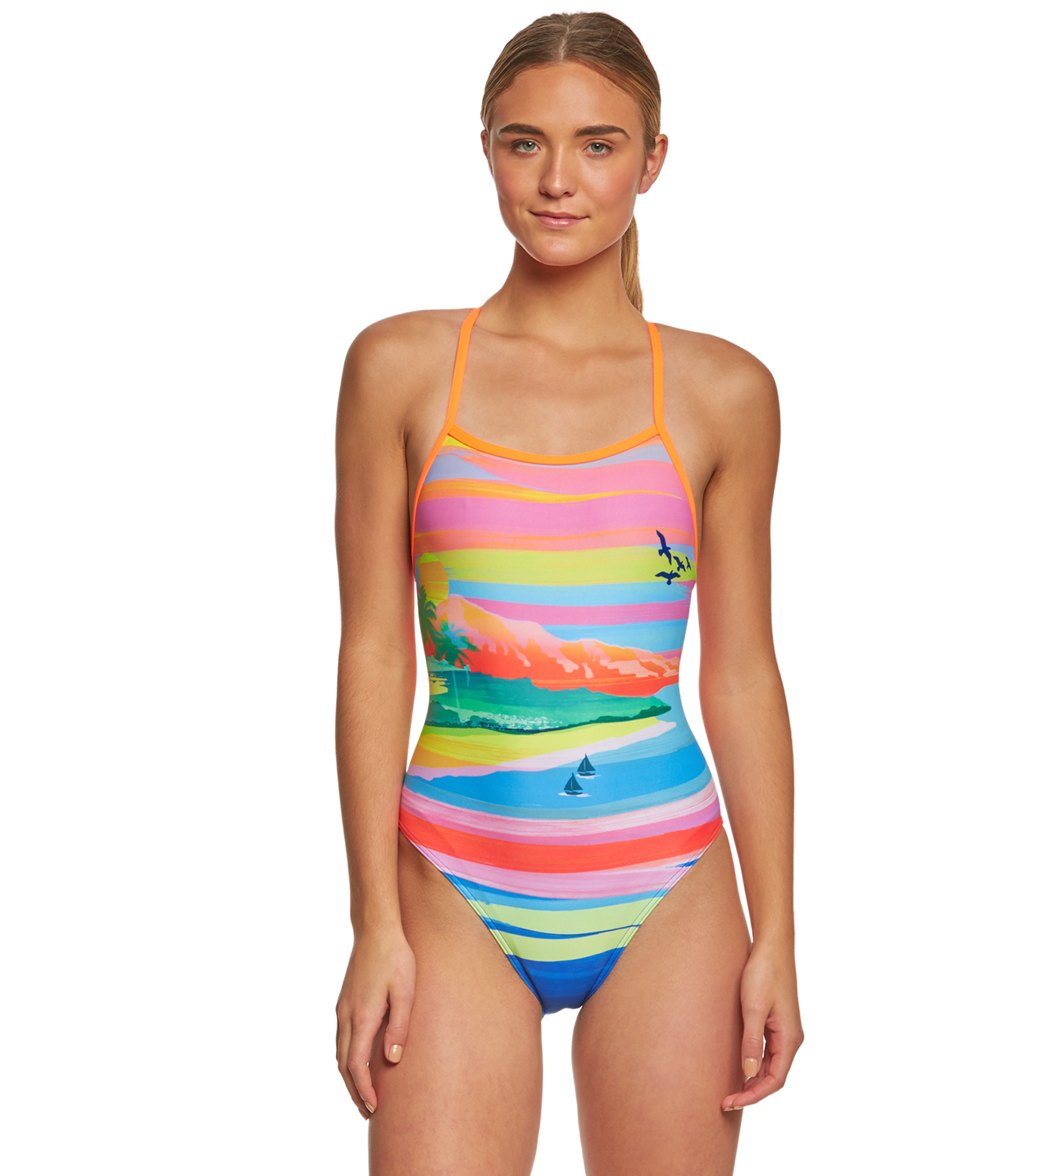 0ea7c190151 Funkita Women's Pina Colada Tie Me Tight One Piece Swimsuit at  SwimOutlet.com - Free Shipping